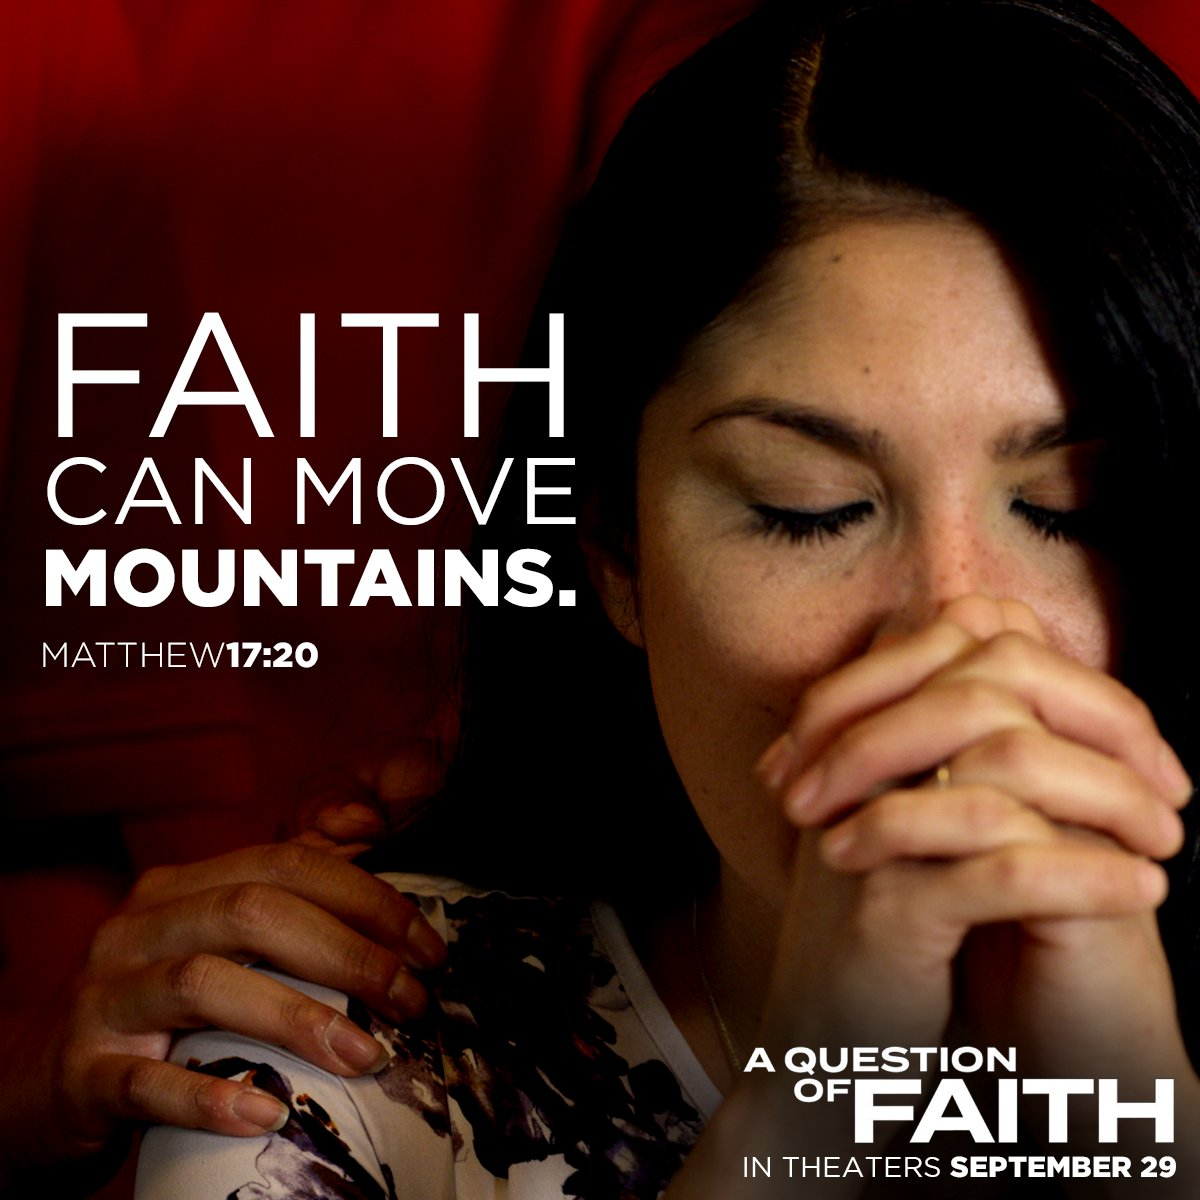 &quot;Therefore, we do NOT lose heart!&quot; See #AQuestionofFaith in #theaters 9/29. Watch -  http:// bit.ly/2xv3Pp7  &nbsp;   #Christian #movie #family #faith<br>http://pic.twitter.com/camfn9jQGT